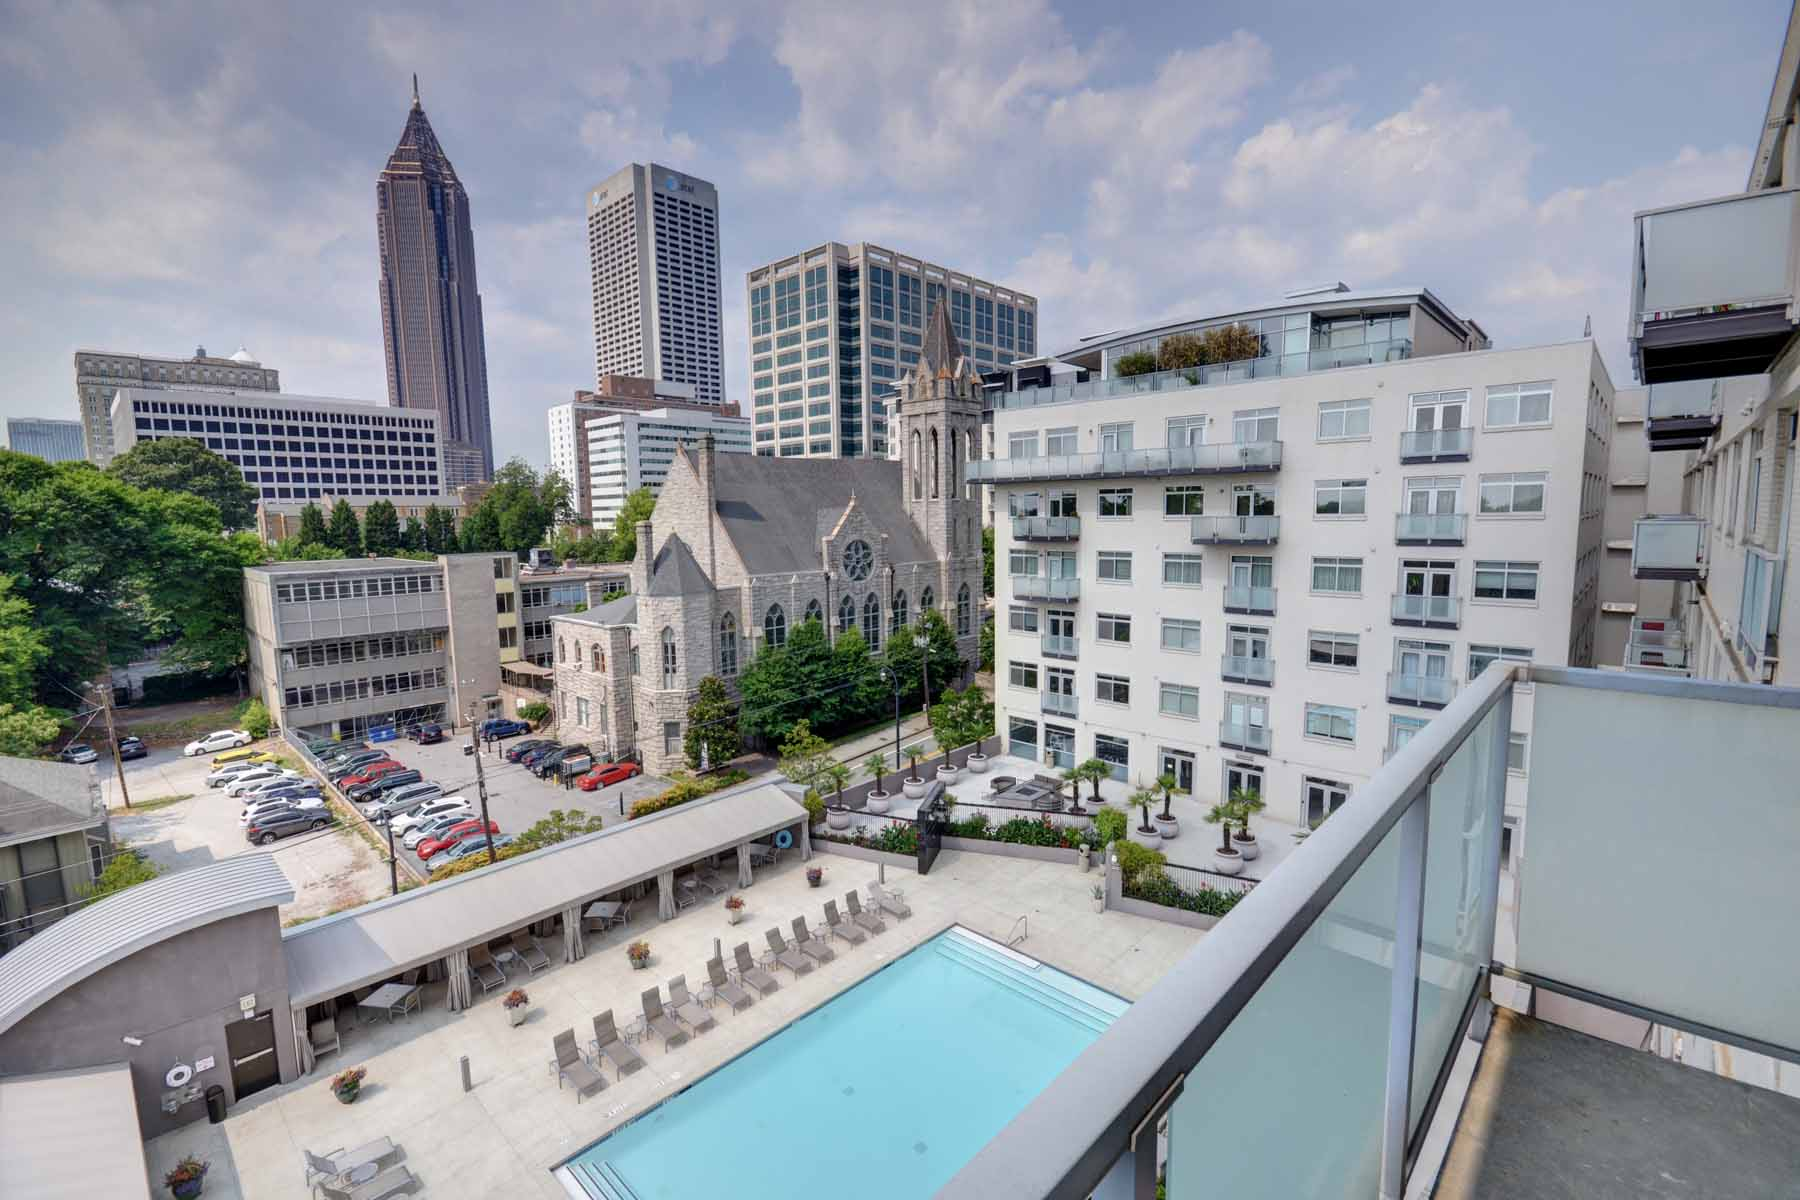 Additional photo for property listing at Beautiful 3-Bedroom3-Bath Combined Corner Unit at 805 Peachtree! 805 Peachtree Street NE Unit 504503 Atlanta, Georgia 30308 Hoa Kỳ